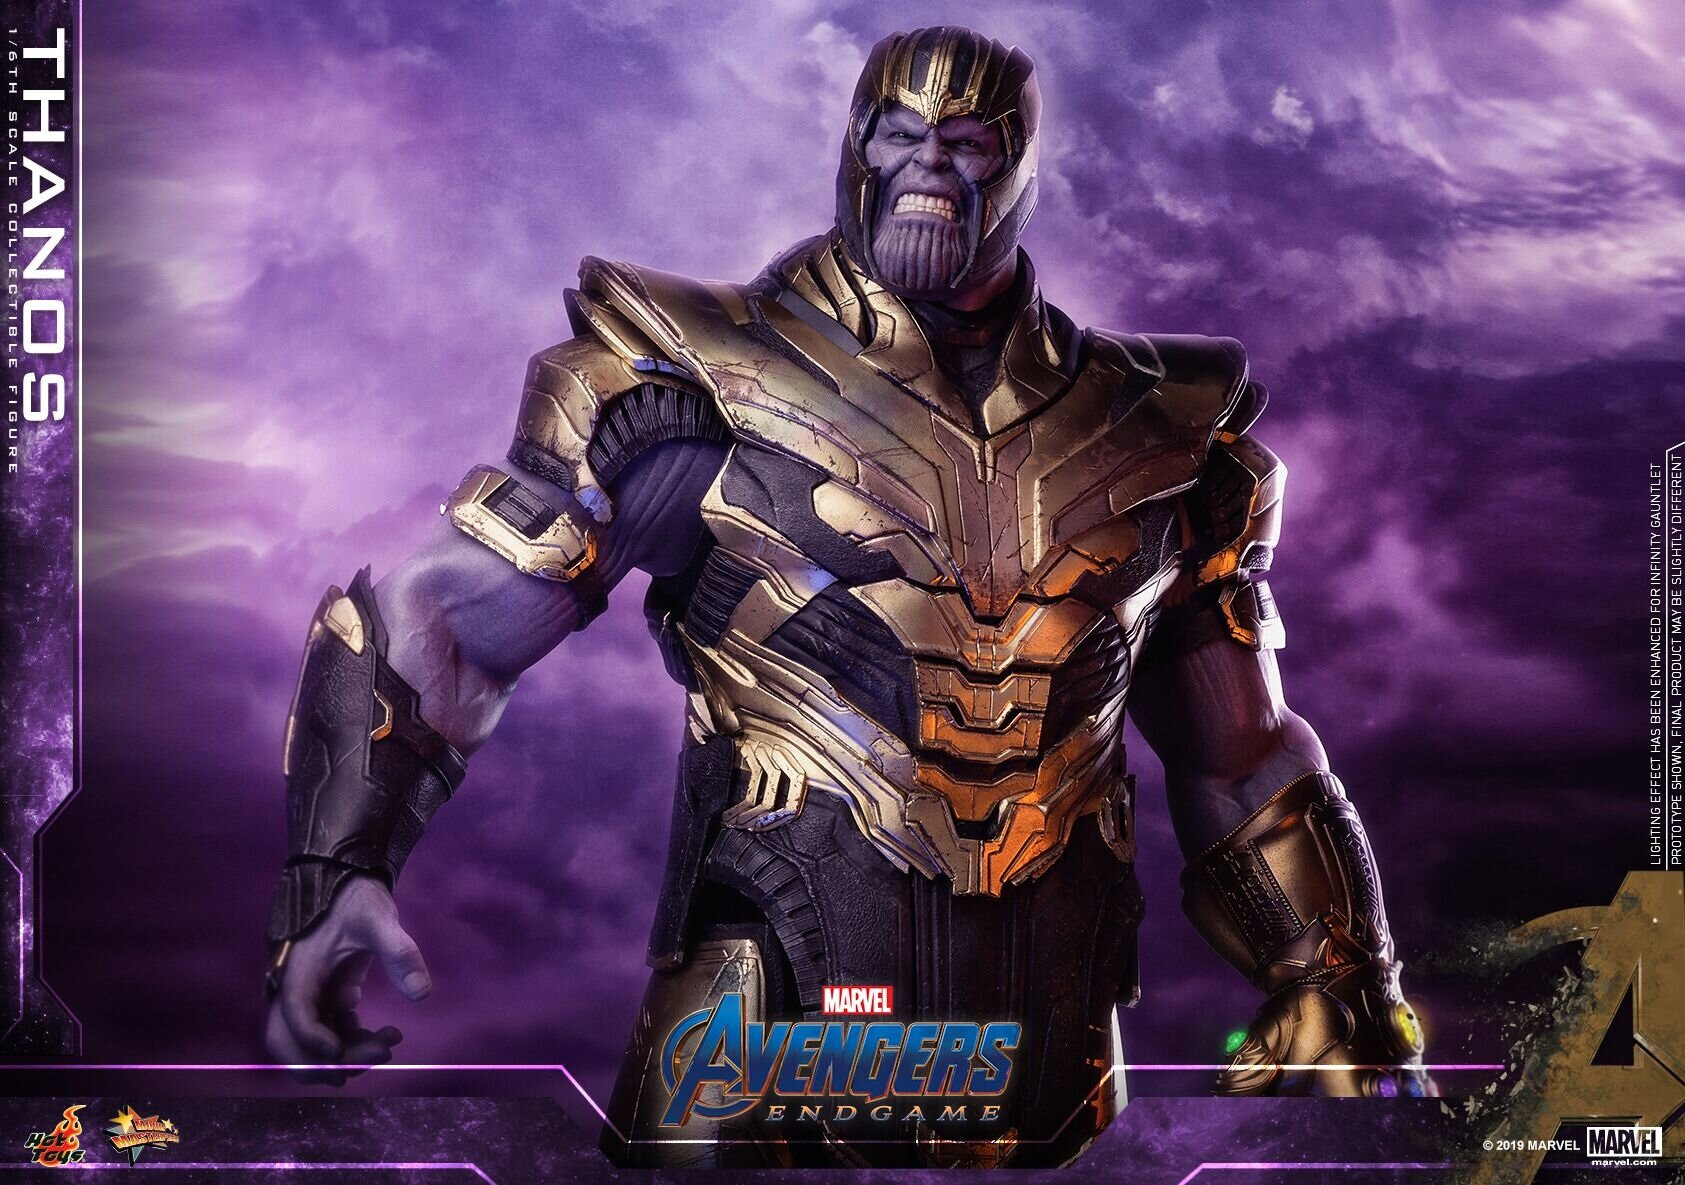 [Hot Toys] 어벤져스 : 엔드게임 타노스 MMS529 - 1/6th scale Thanos Collectible Figure Collectible Figure